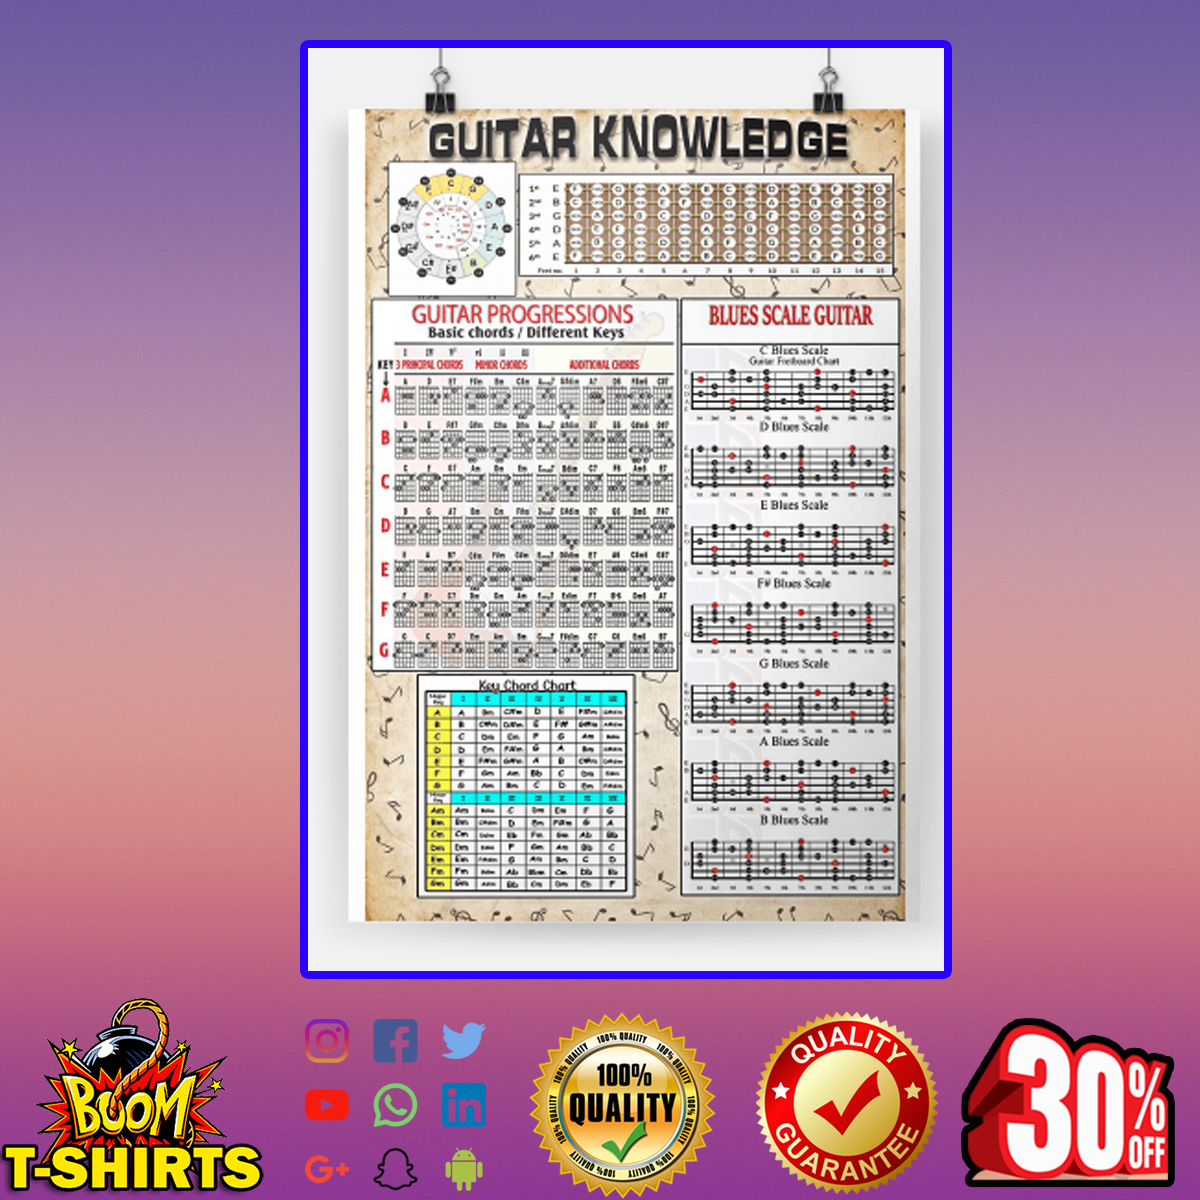 Guitar knowledge guitar progressions blues scale guitar poster